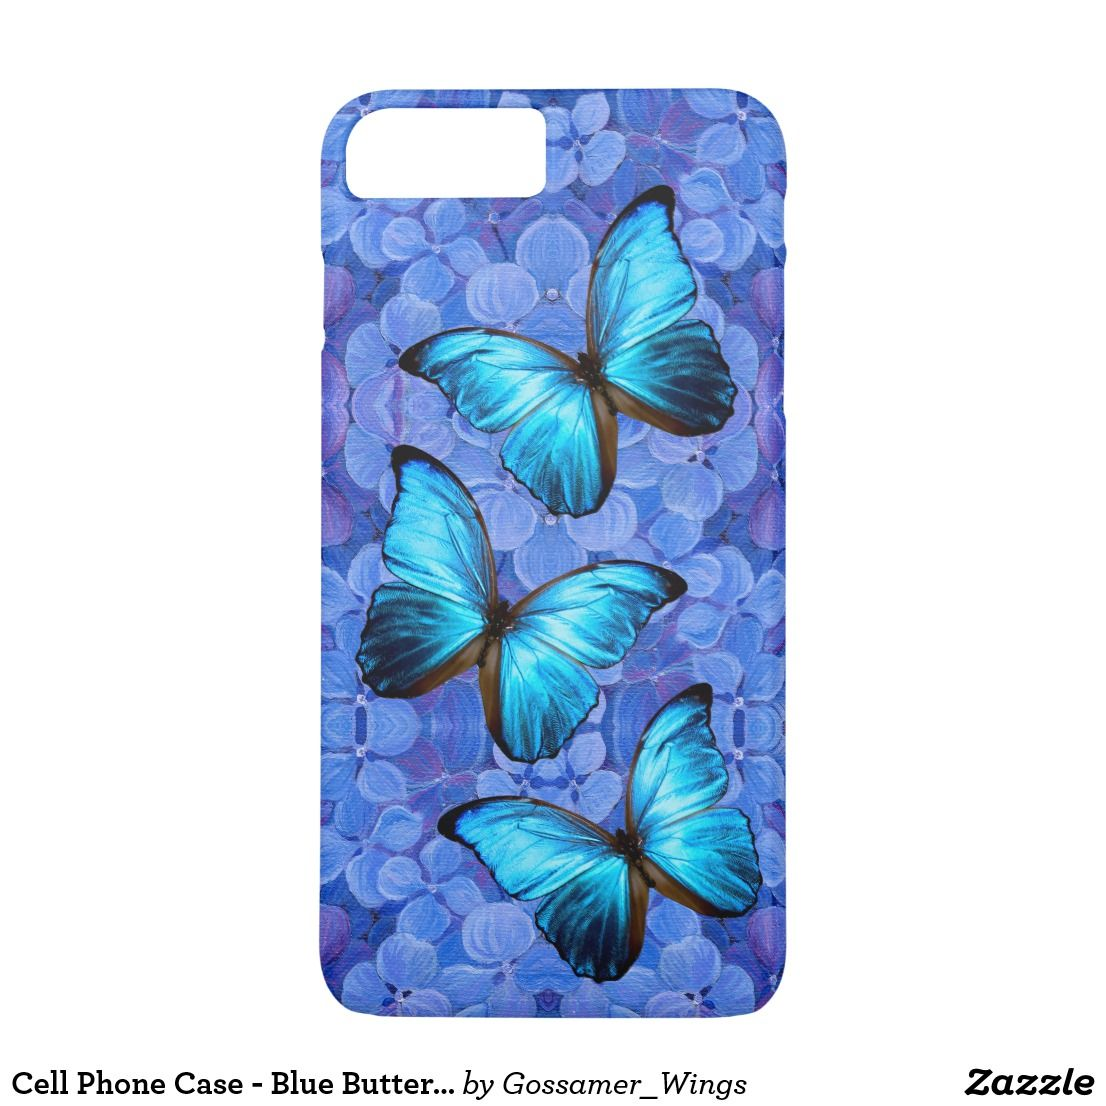 Cell phone case blue butterfly hydrangeas iphone